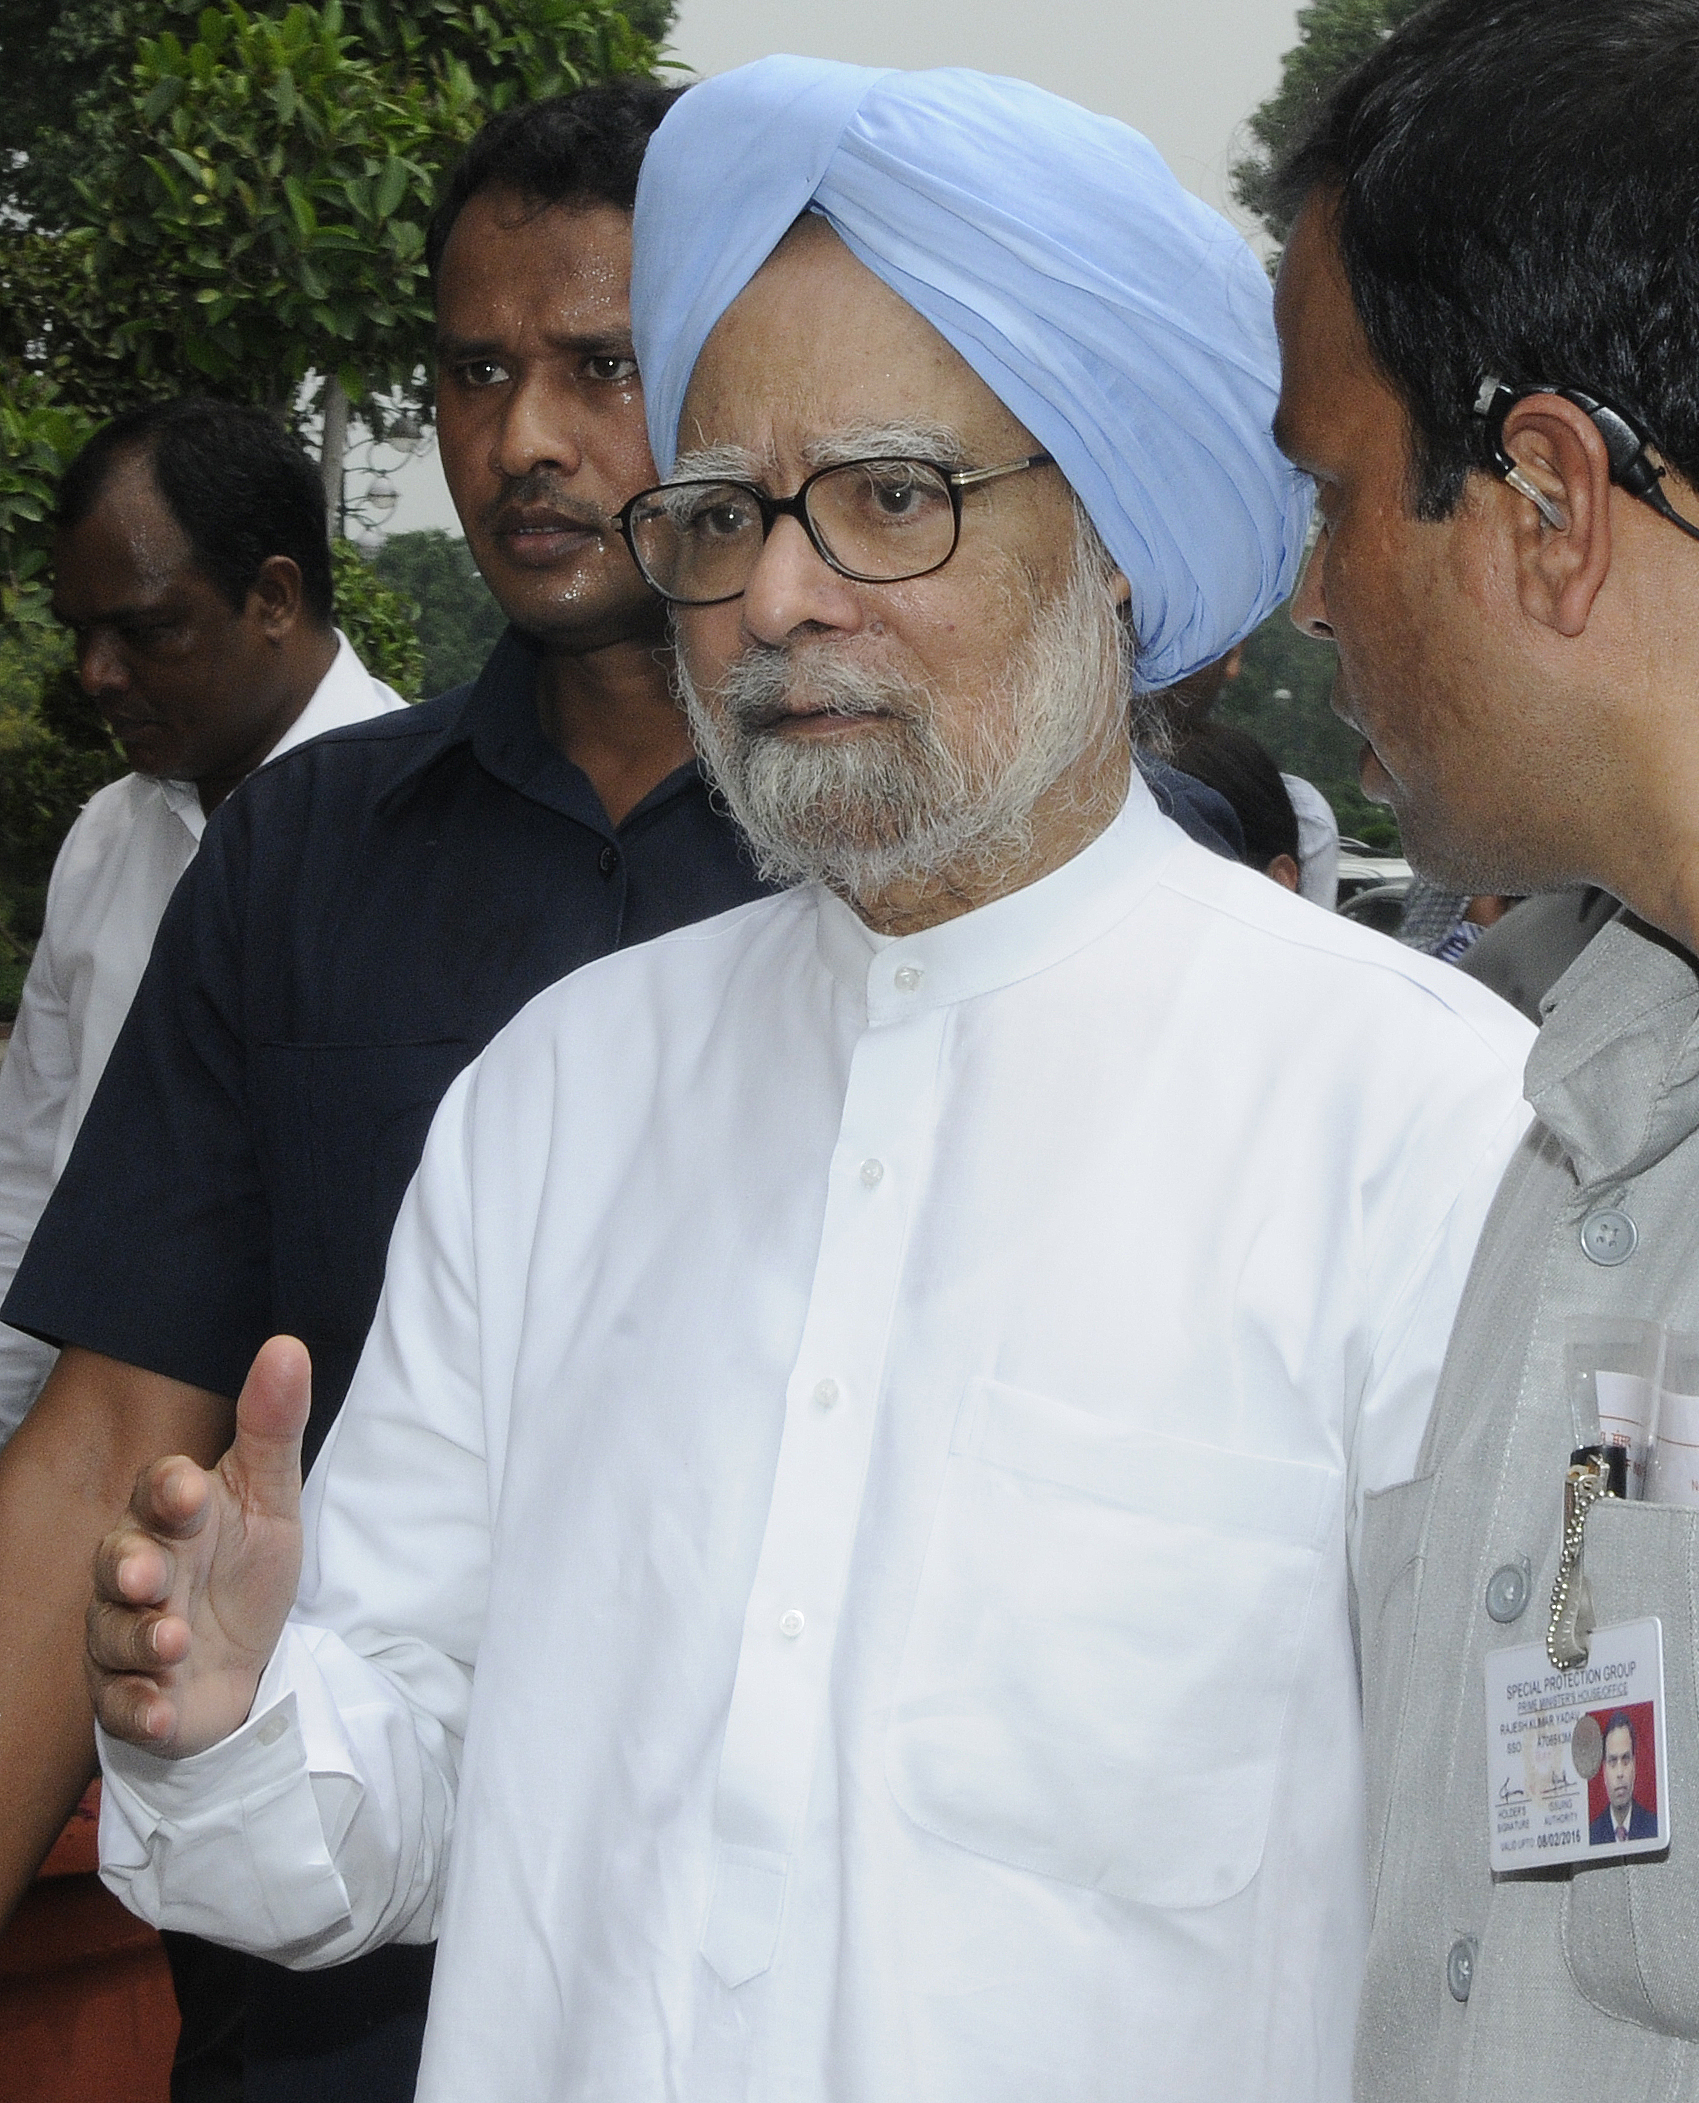 Former Indian Prime Minister Manmohan Singh after protest against Prime Minister Narendra Modi and the National Democratic Alliance government at Parliament House on Aug. 5, 2015, in New Delhi